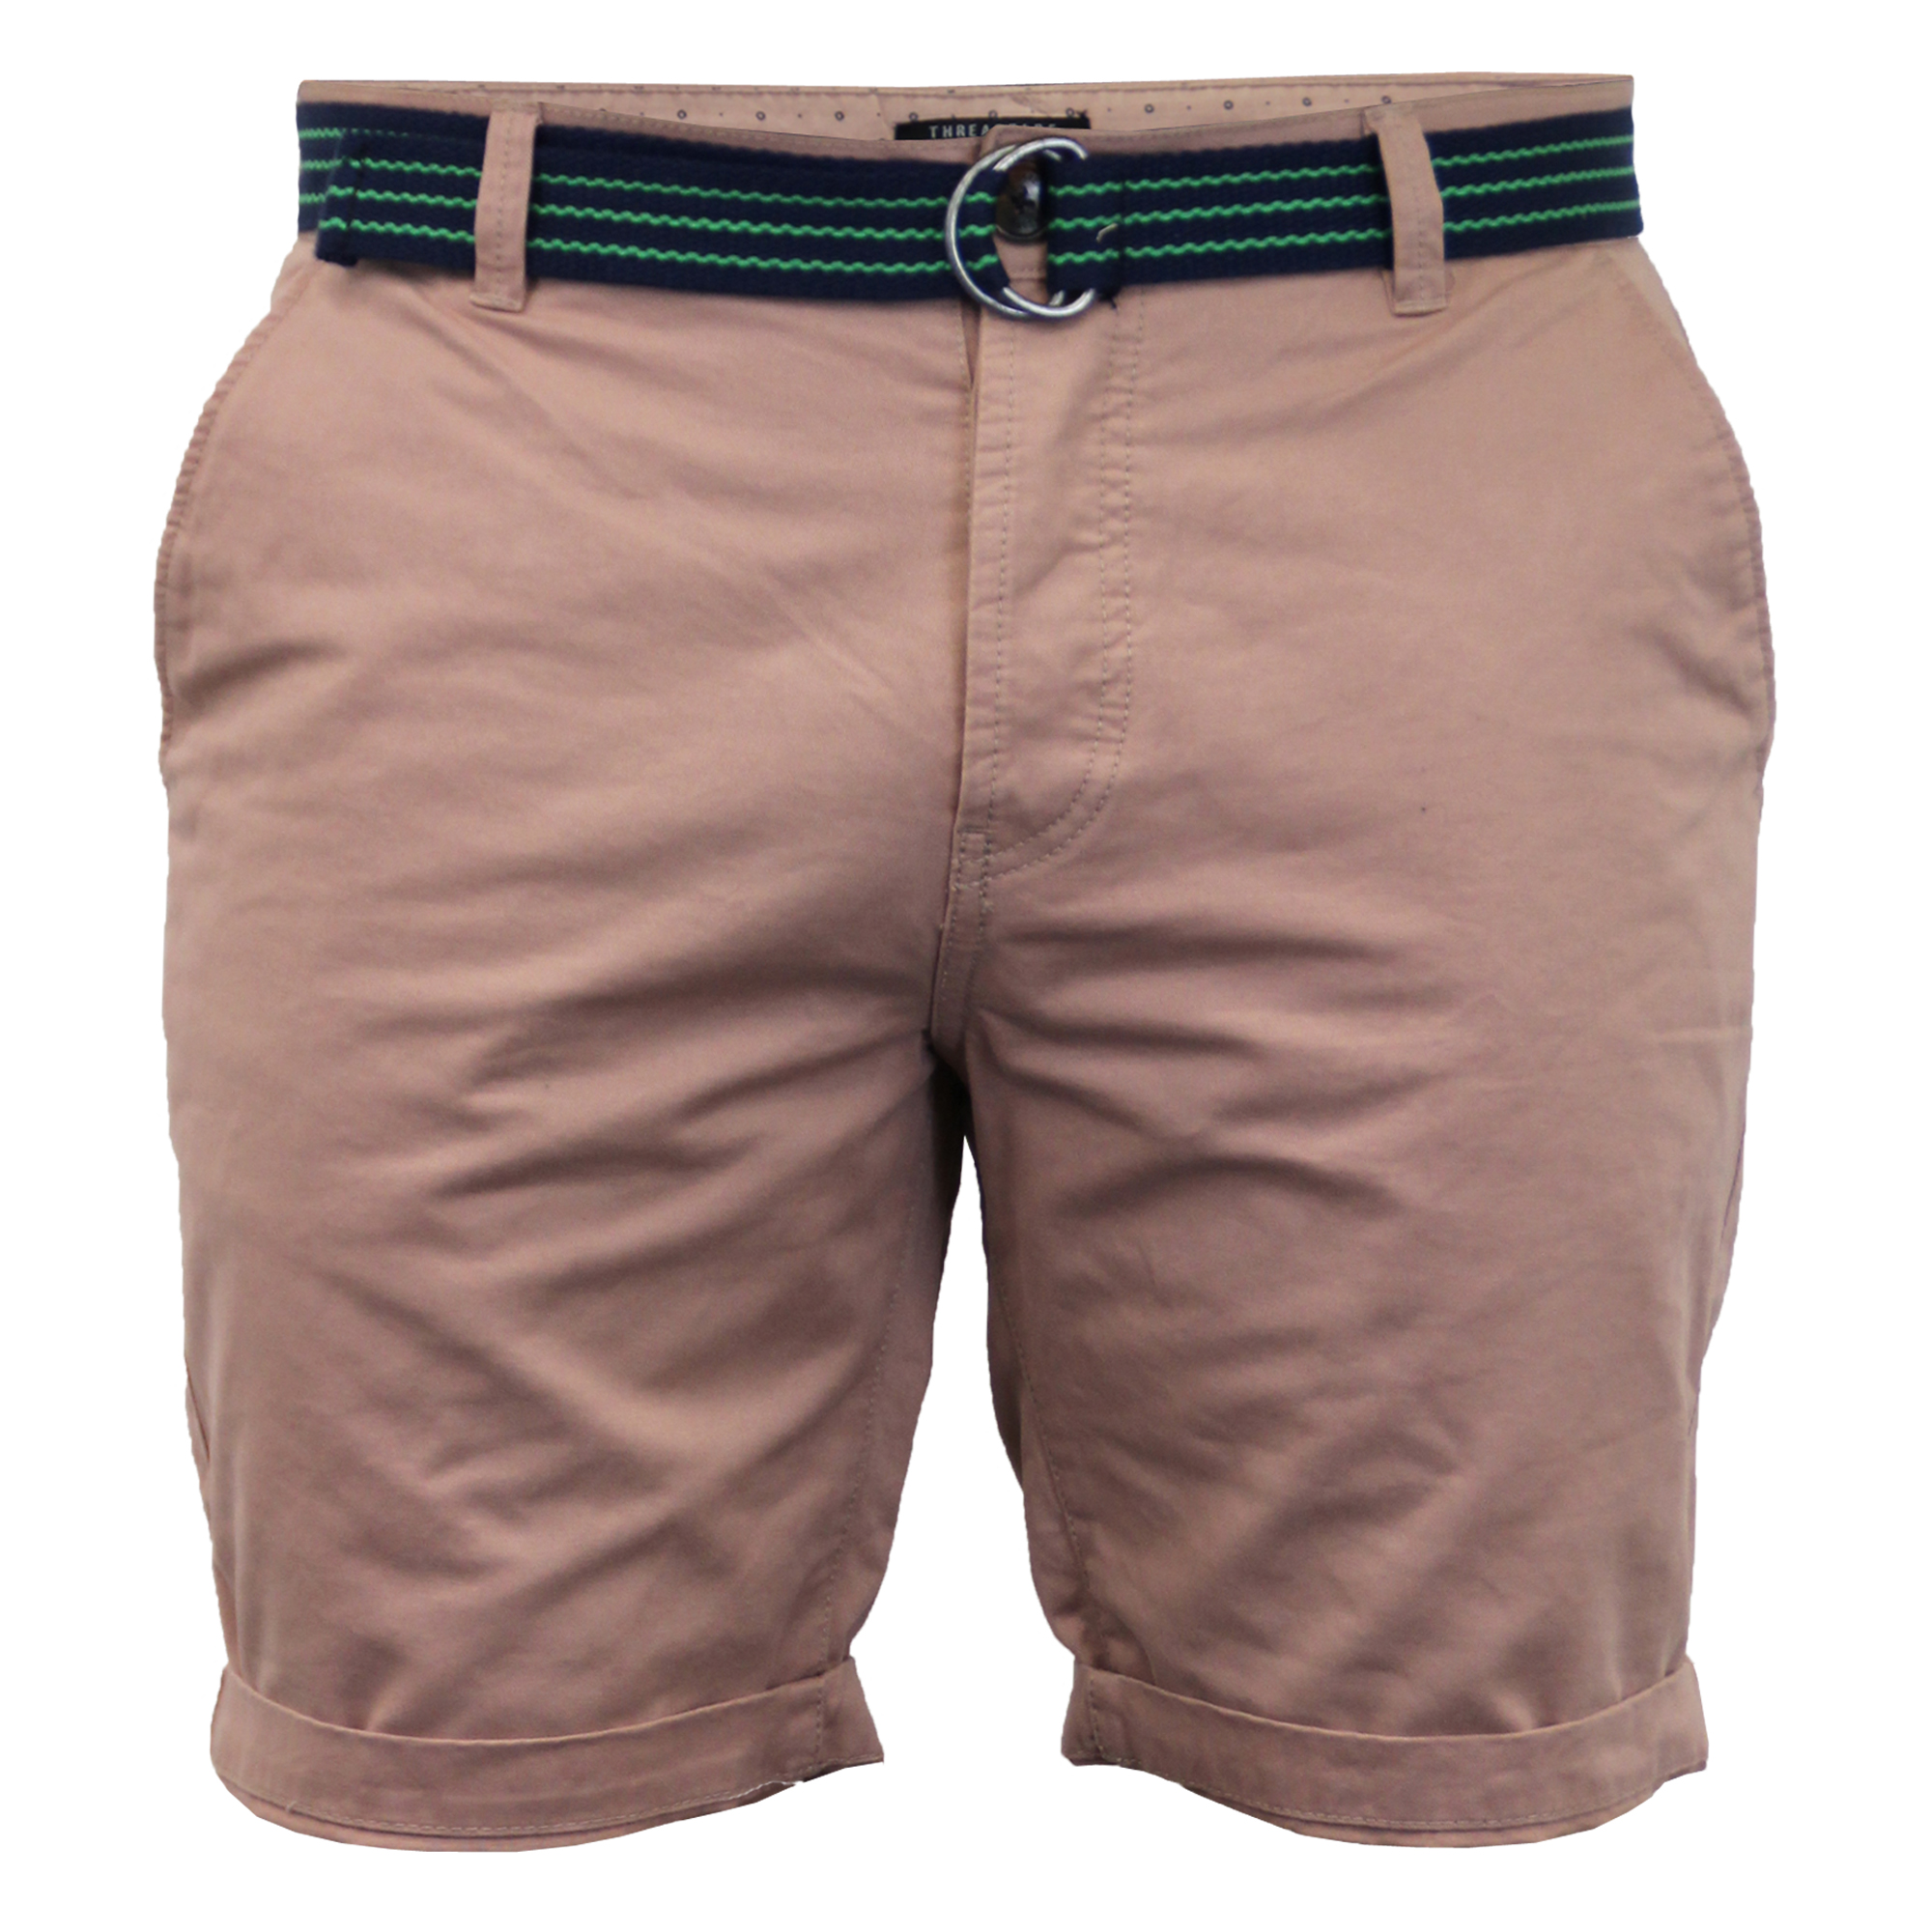 Mens-Chino-Shorts-Threadbare-Belted-Westace-Pants-Knee-Length-Roll-Up-Summer-New thumbnail 10